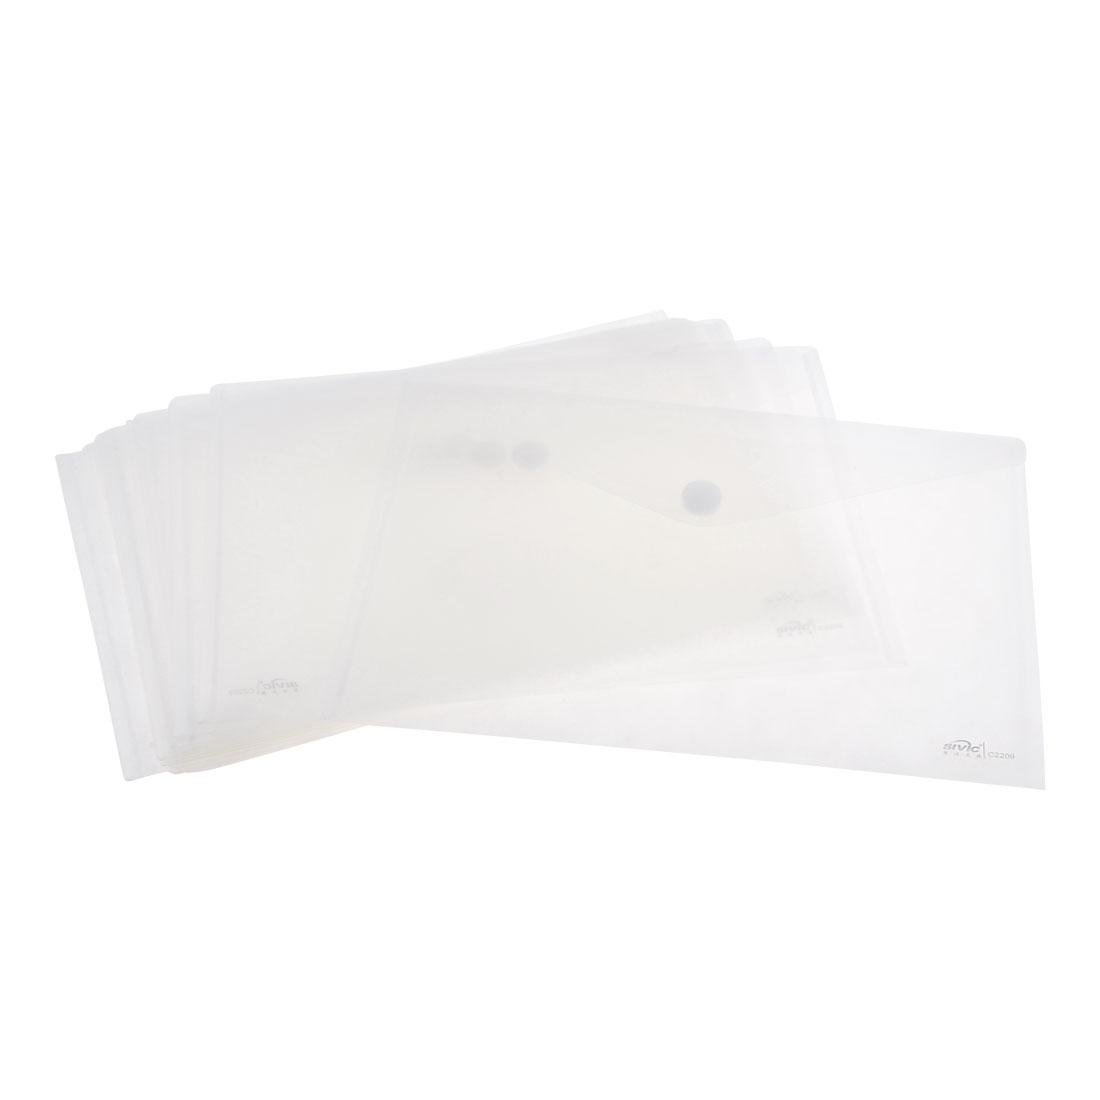 12 Pcs Clear Plastic A4 Side Hook Loop Fastener Paper File Document Holder